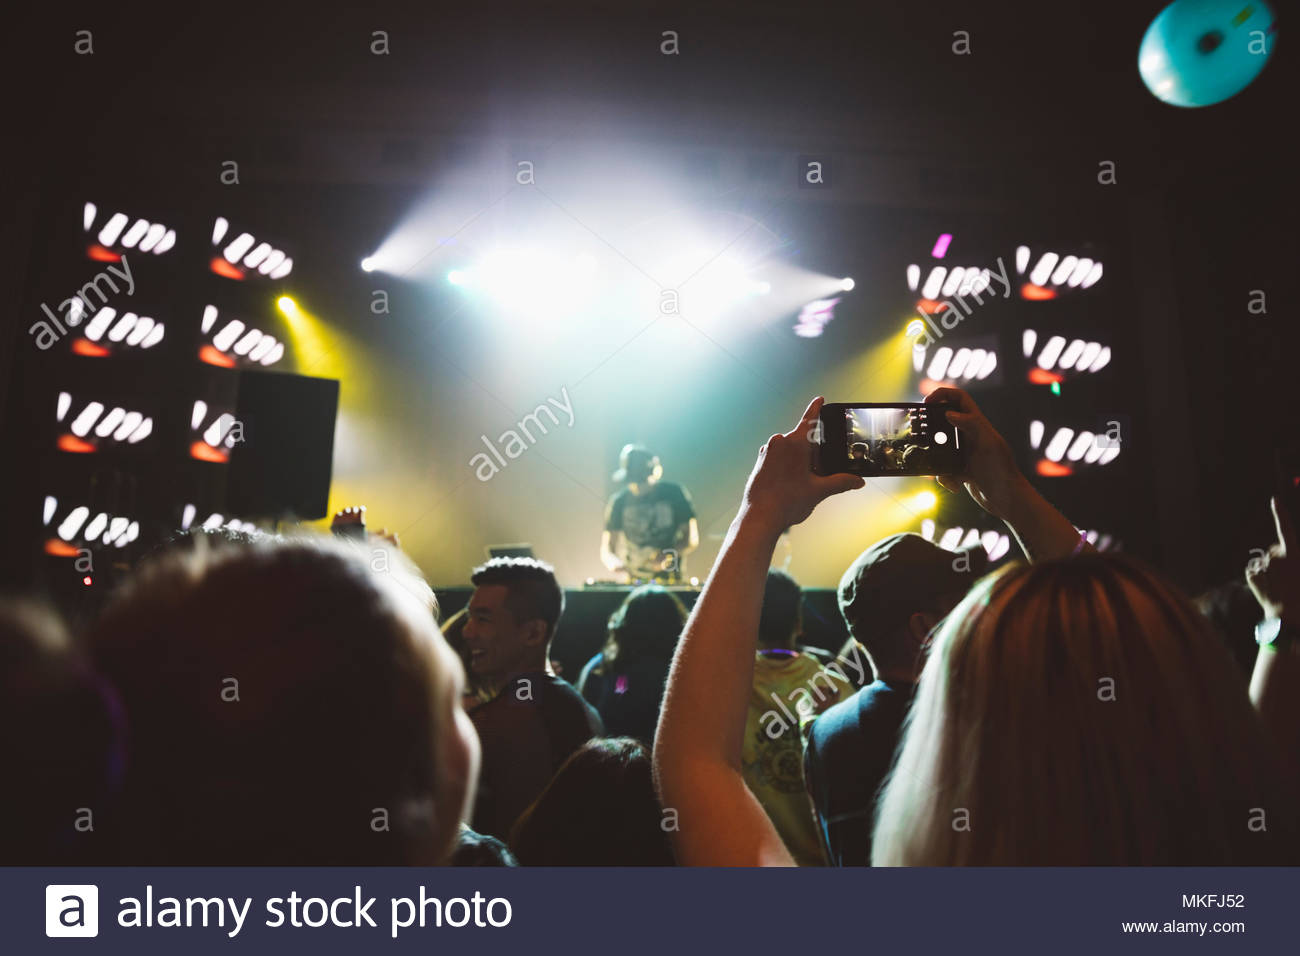 Woman with camera phone in crowd, videoing DJ on nightclub stage - Stock Image